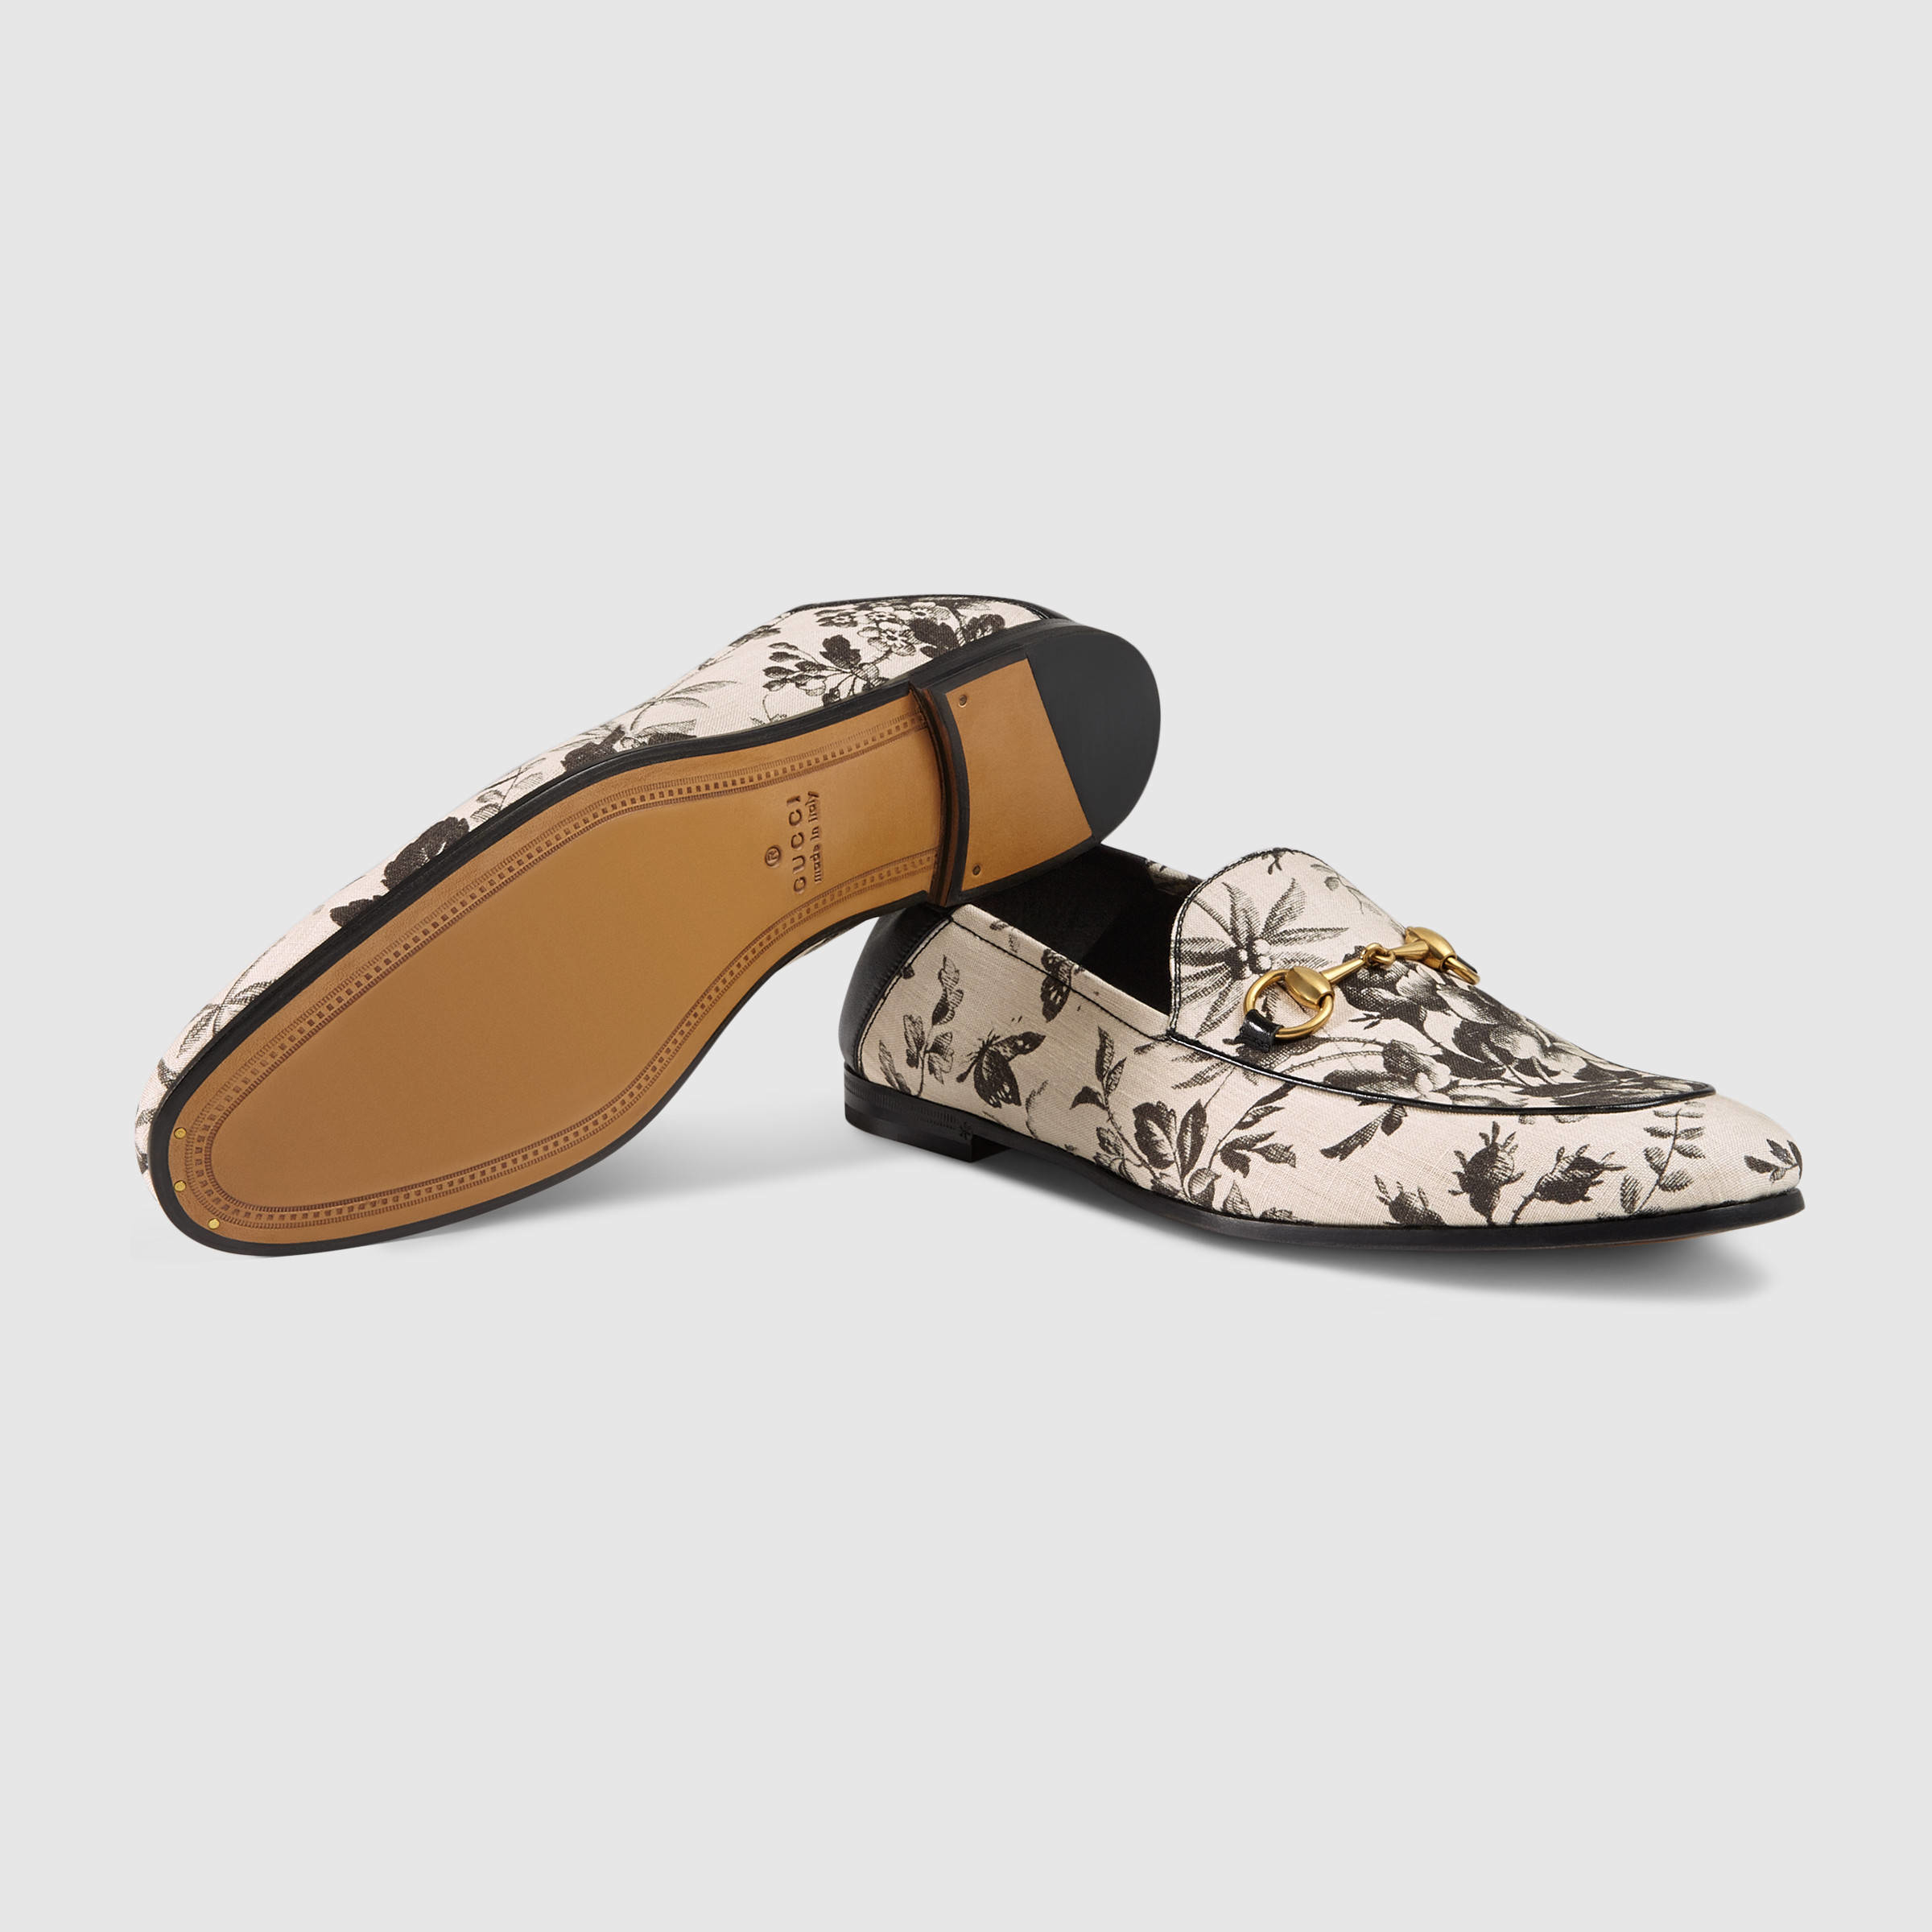 Gucci Driving Loafers in Natural for Men - Lyst